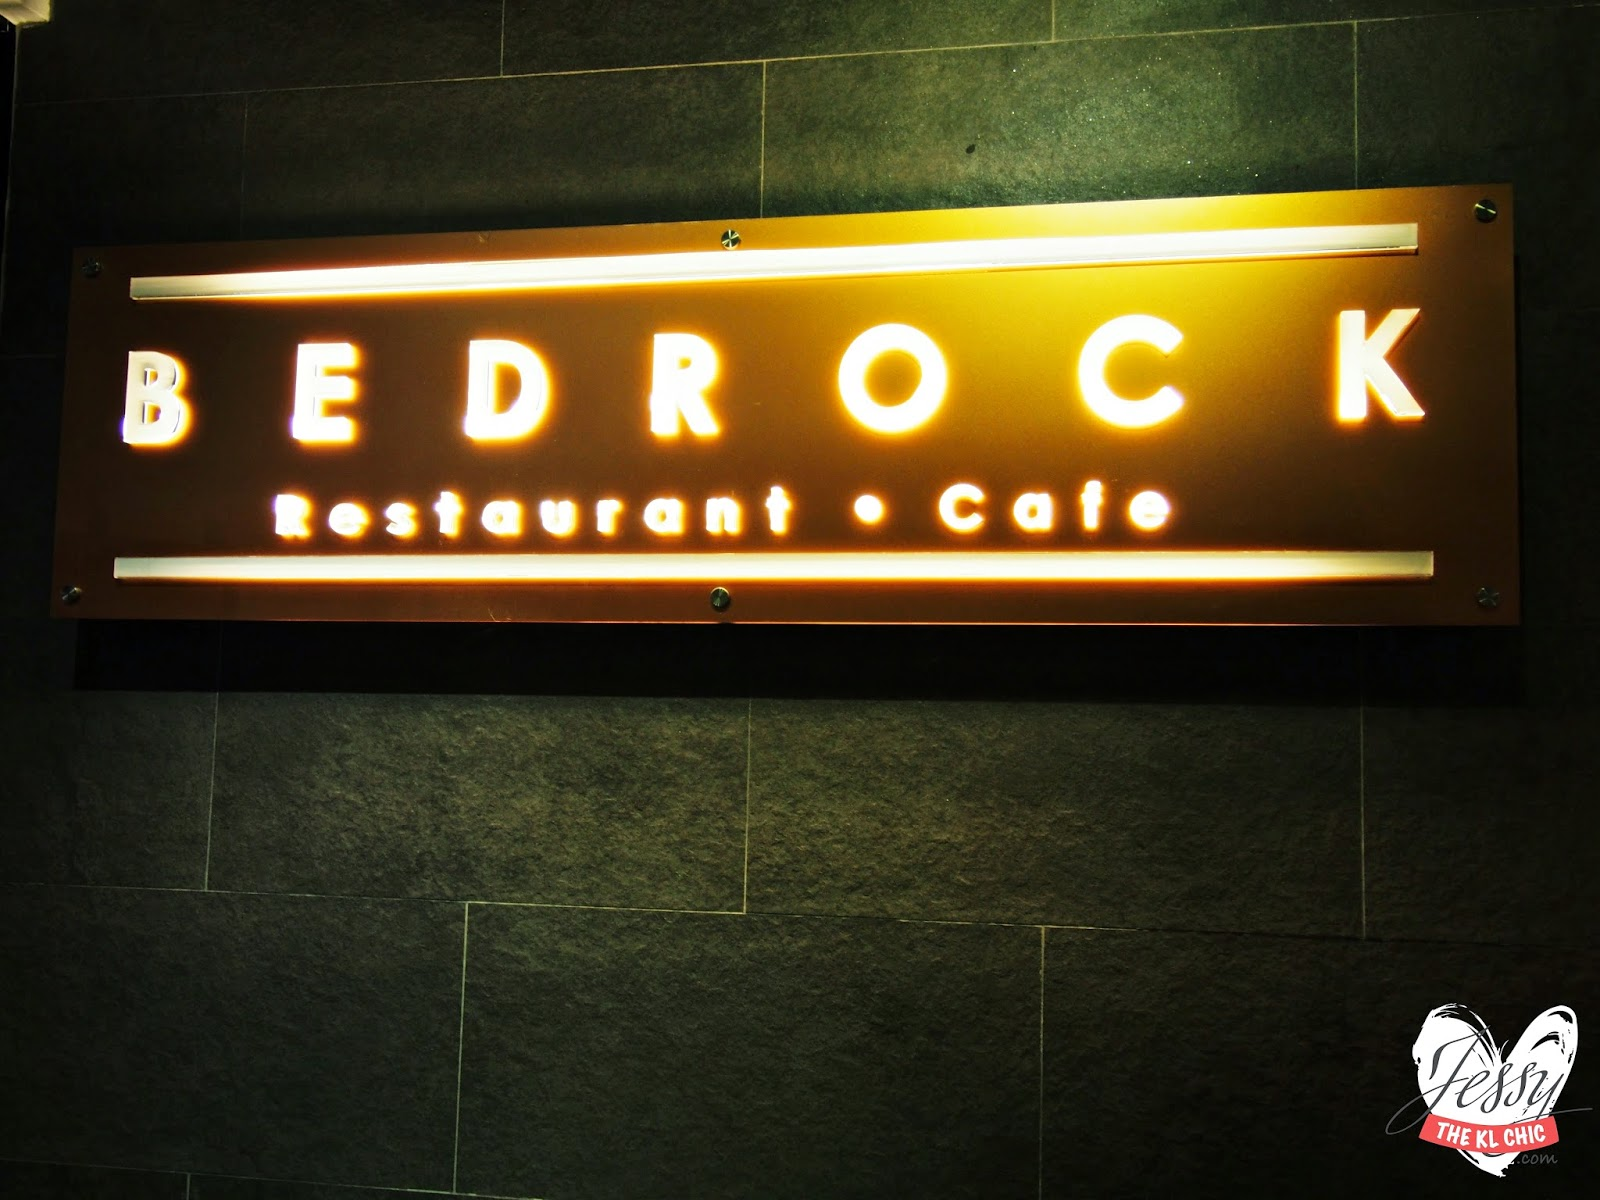 Food: Bedrock Restaurant Cafe (Taipan, USJ)